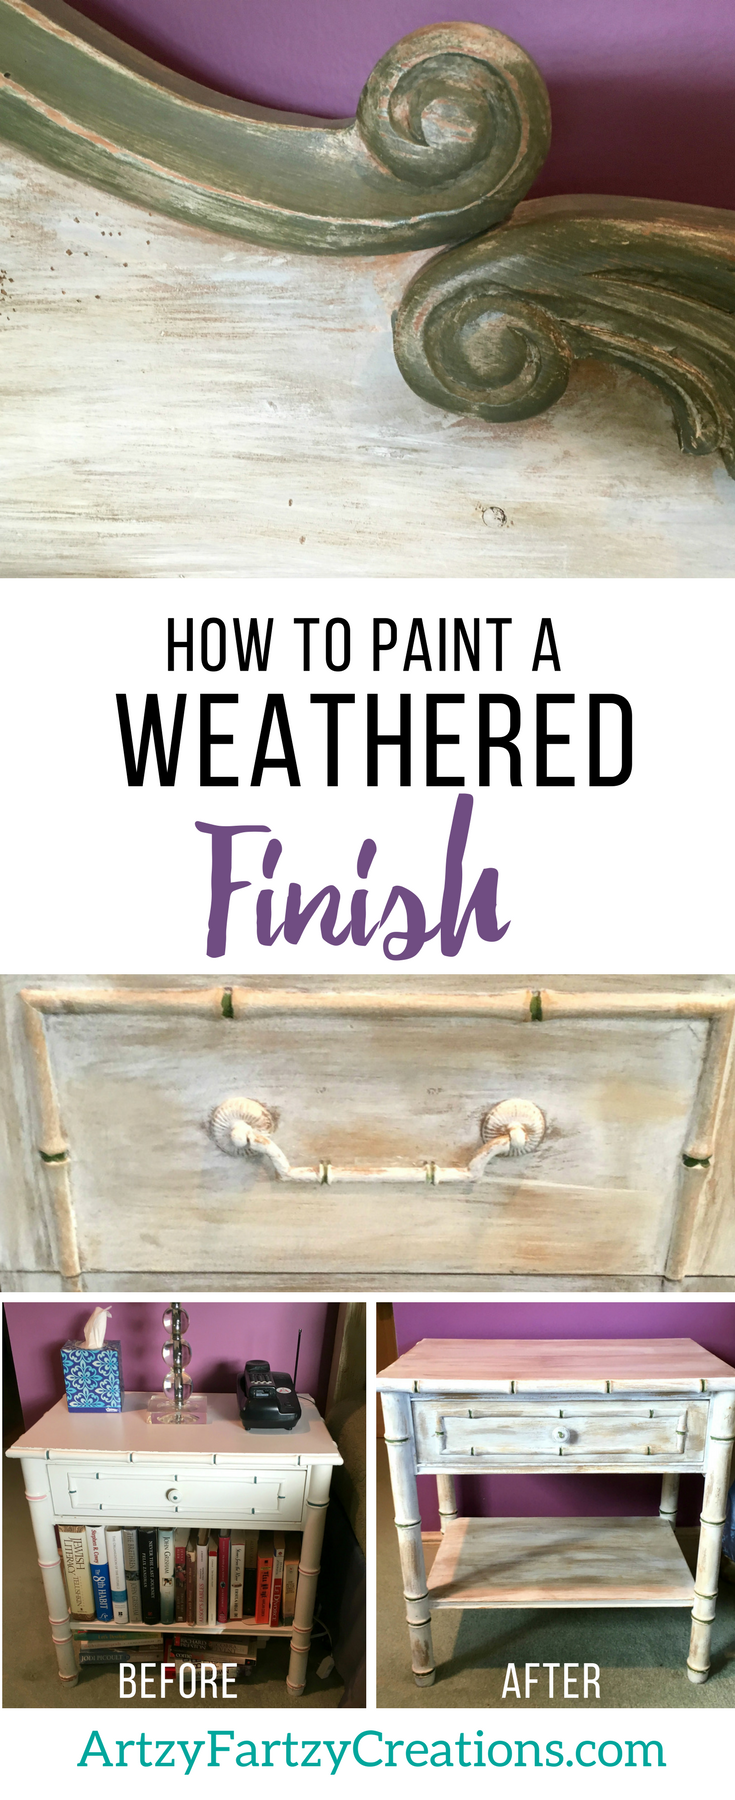 How to Paint a Beachy, Weathered Furniture Finish by Cheryl Phan | How to Paint Furniture | Furniture Painting Tips | Coast Furniture | Beach Decor | Furniture Makover Ideas | Rustic Bedroom Furniture